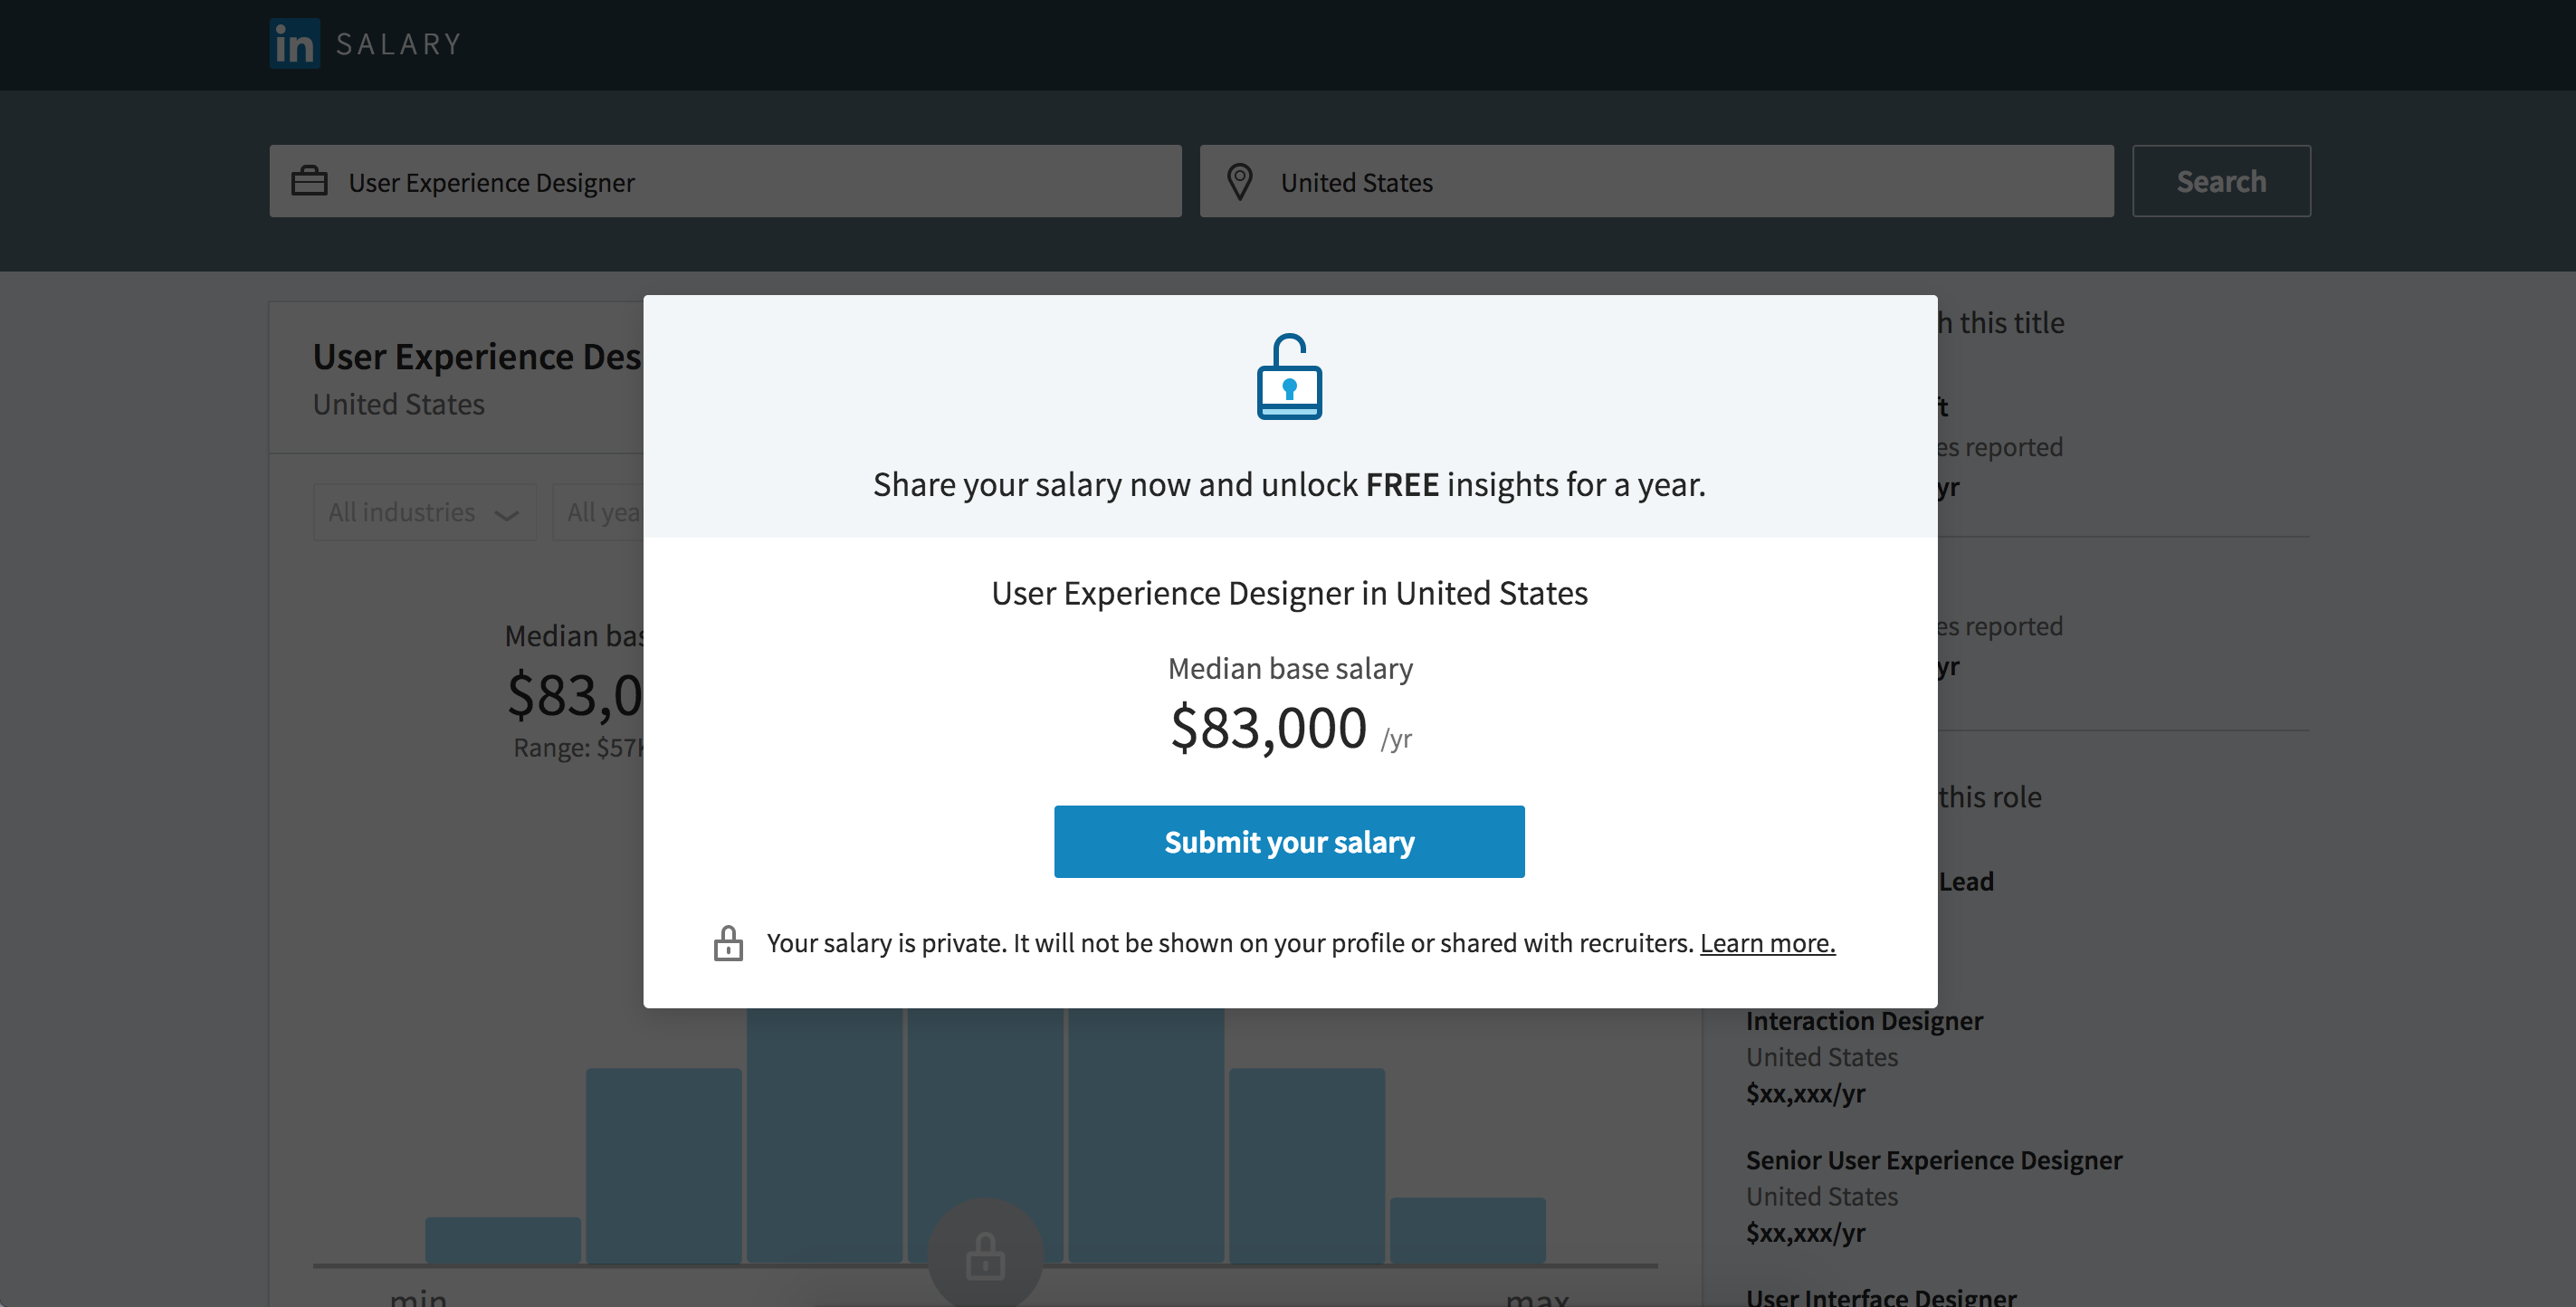 UX Designer Salary on LinkedIn